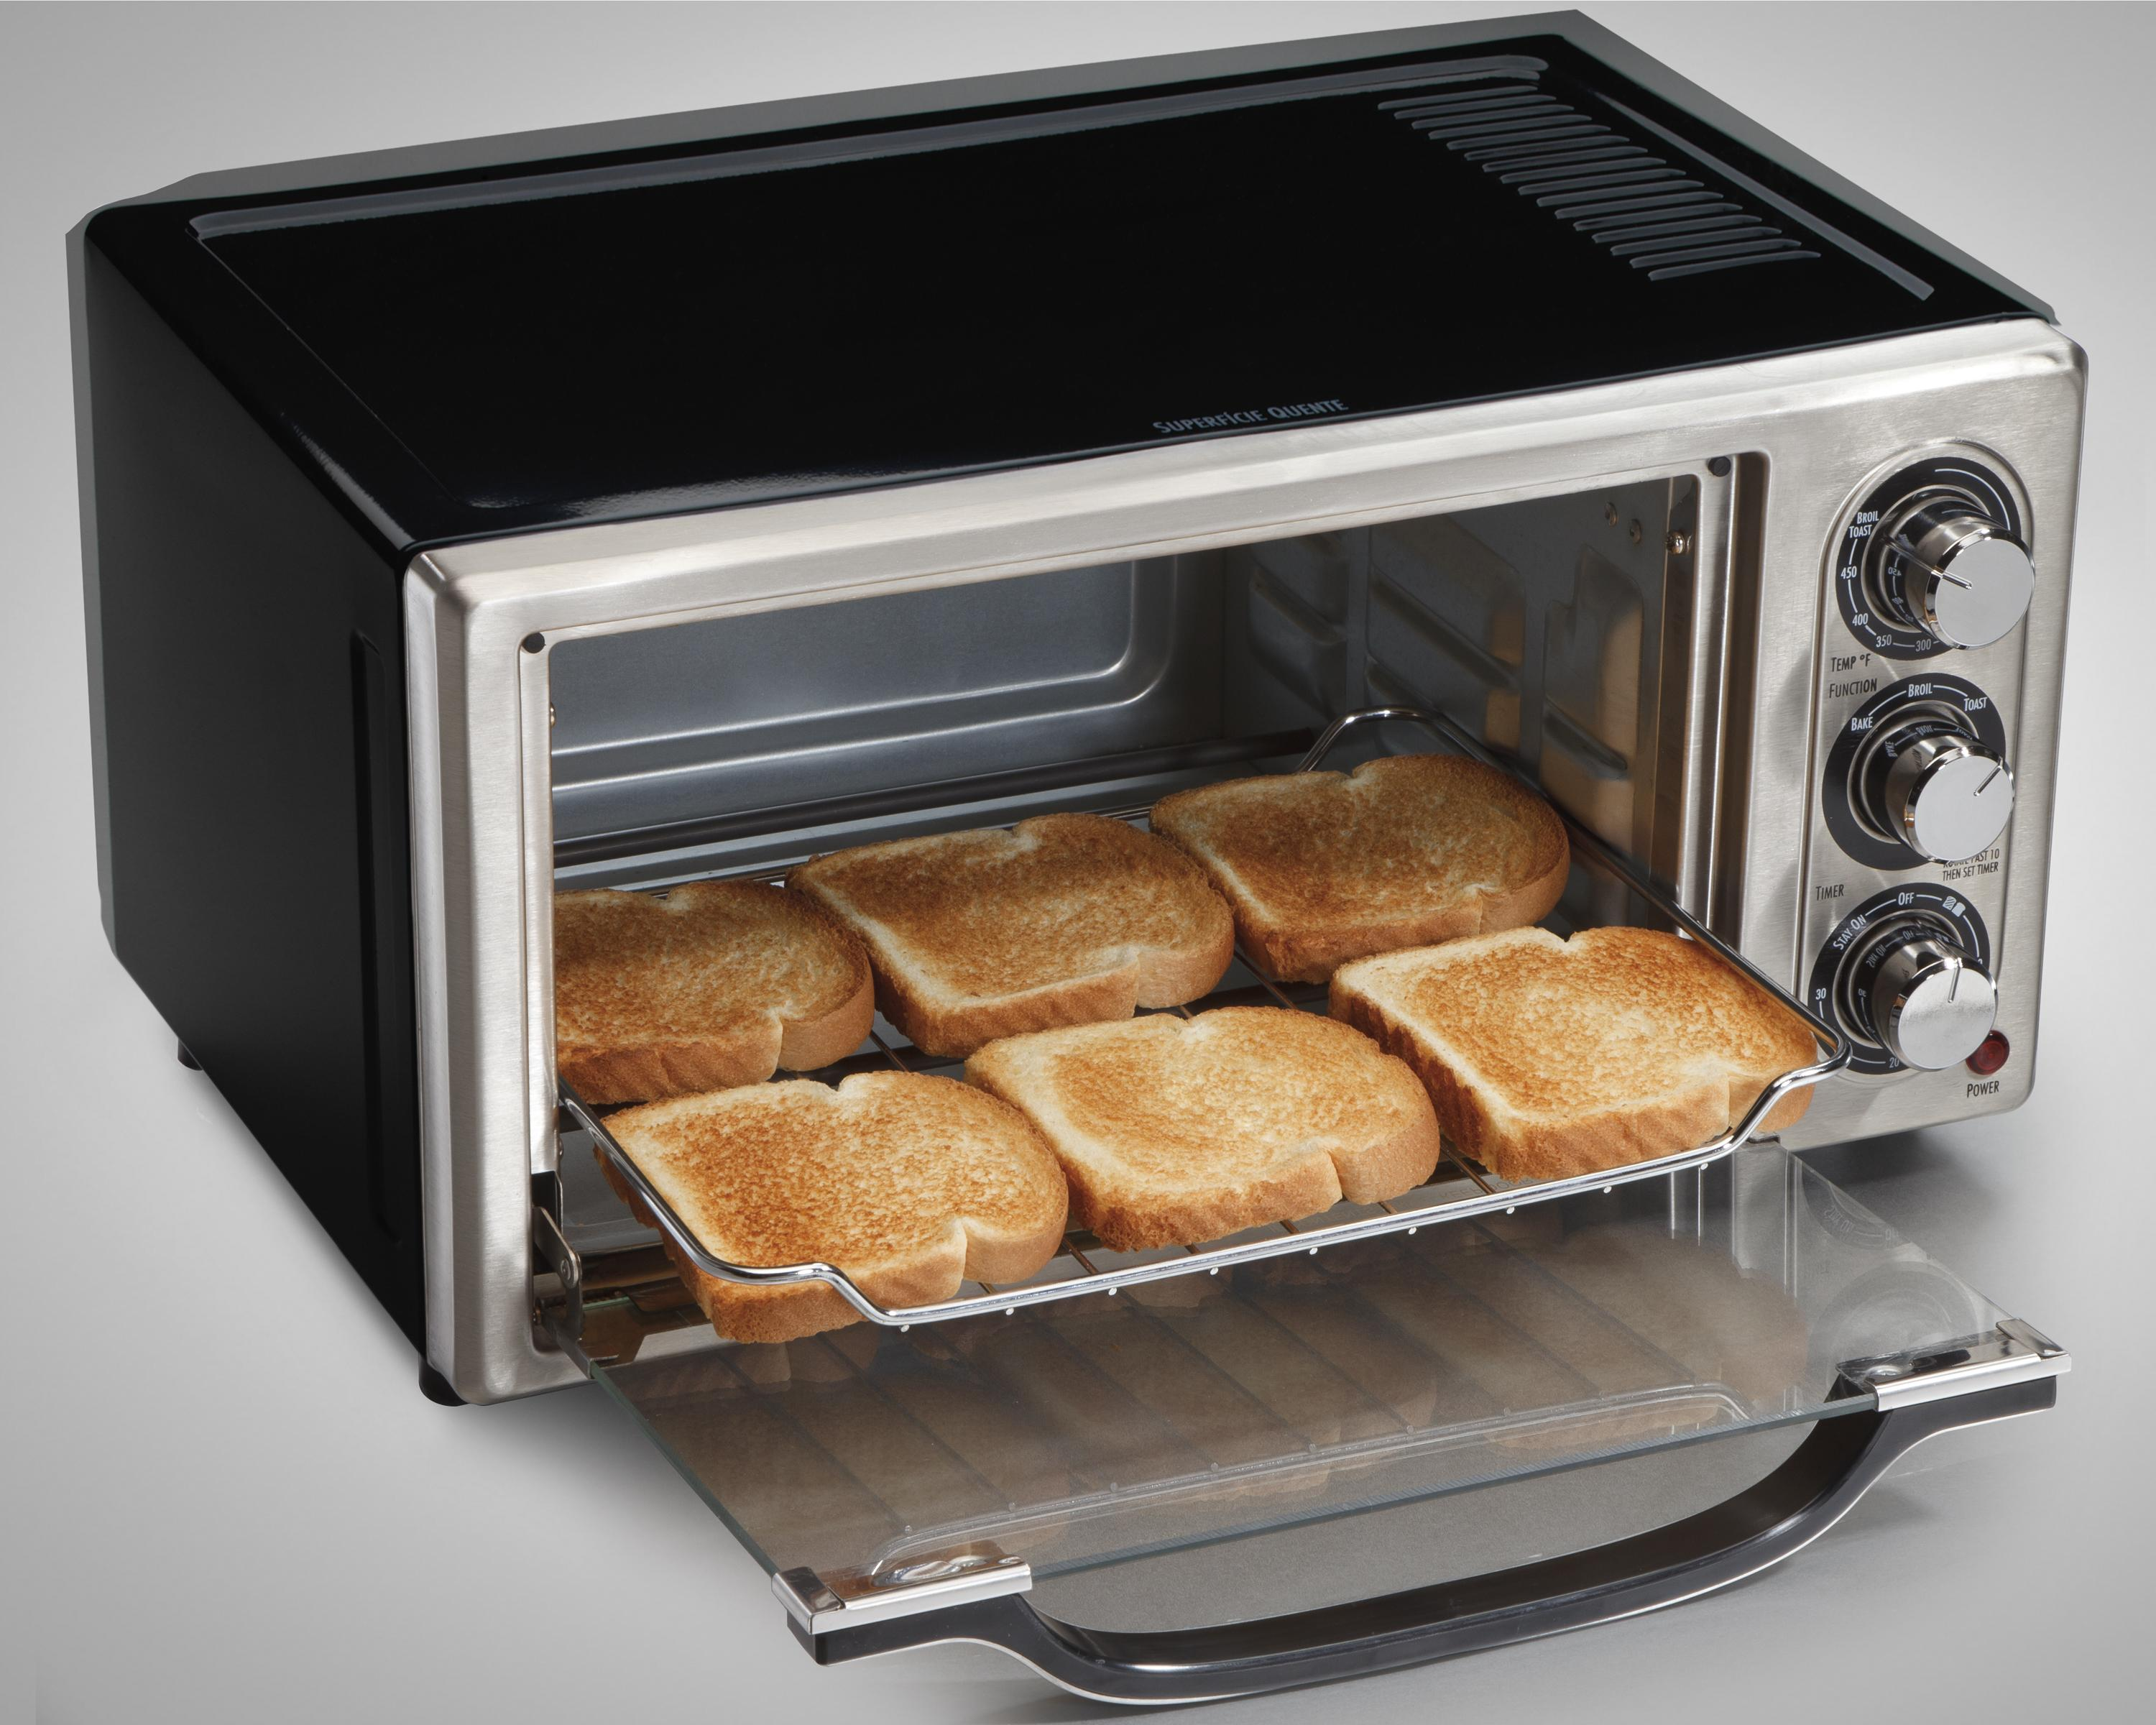 extra black convection lifextra literarywondrous have and an oven life for ideas countertops oster of countertop toaster excellent size full designed photo large decker kitchen